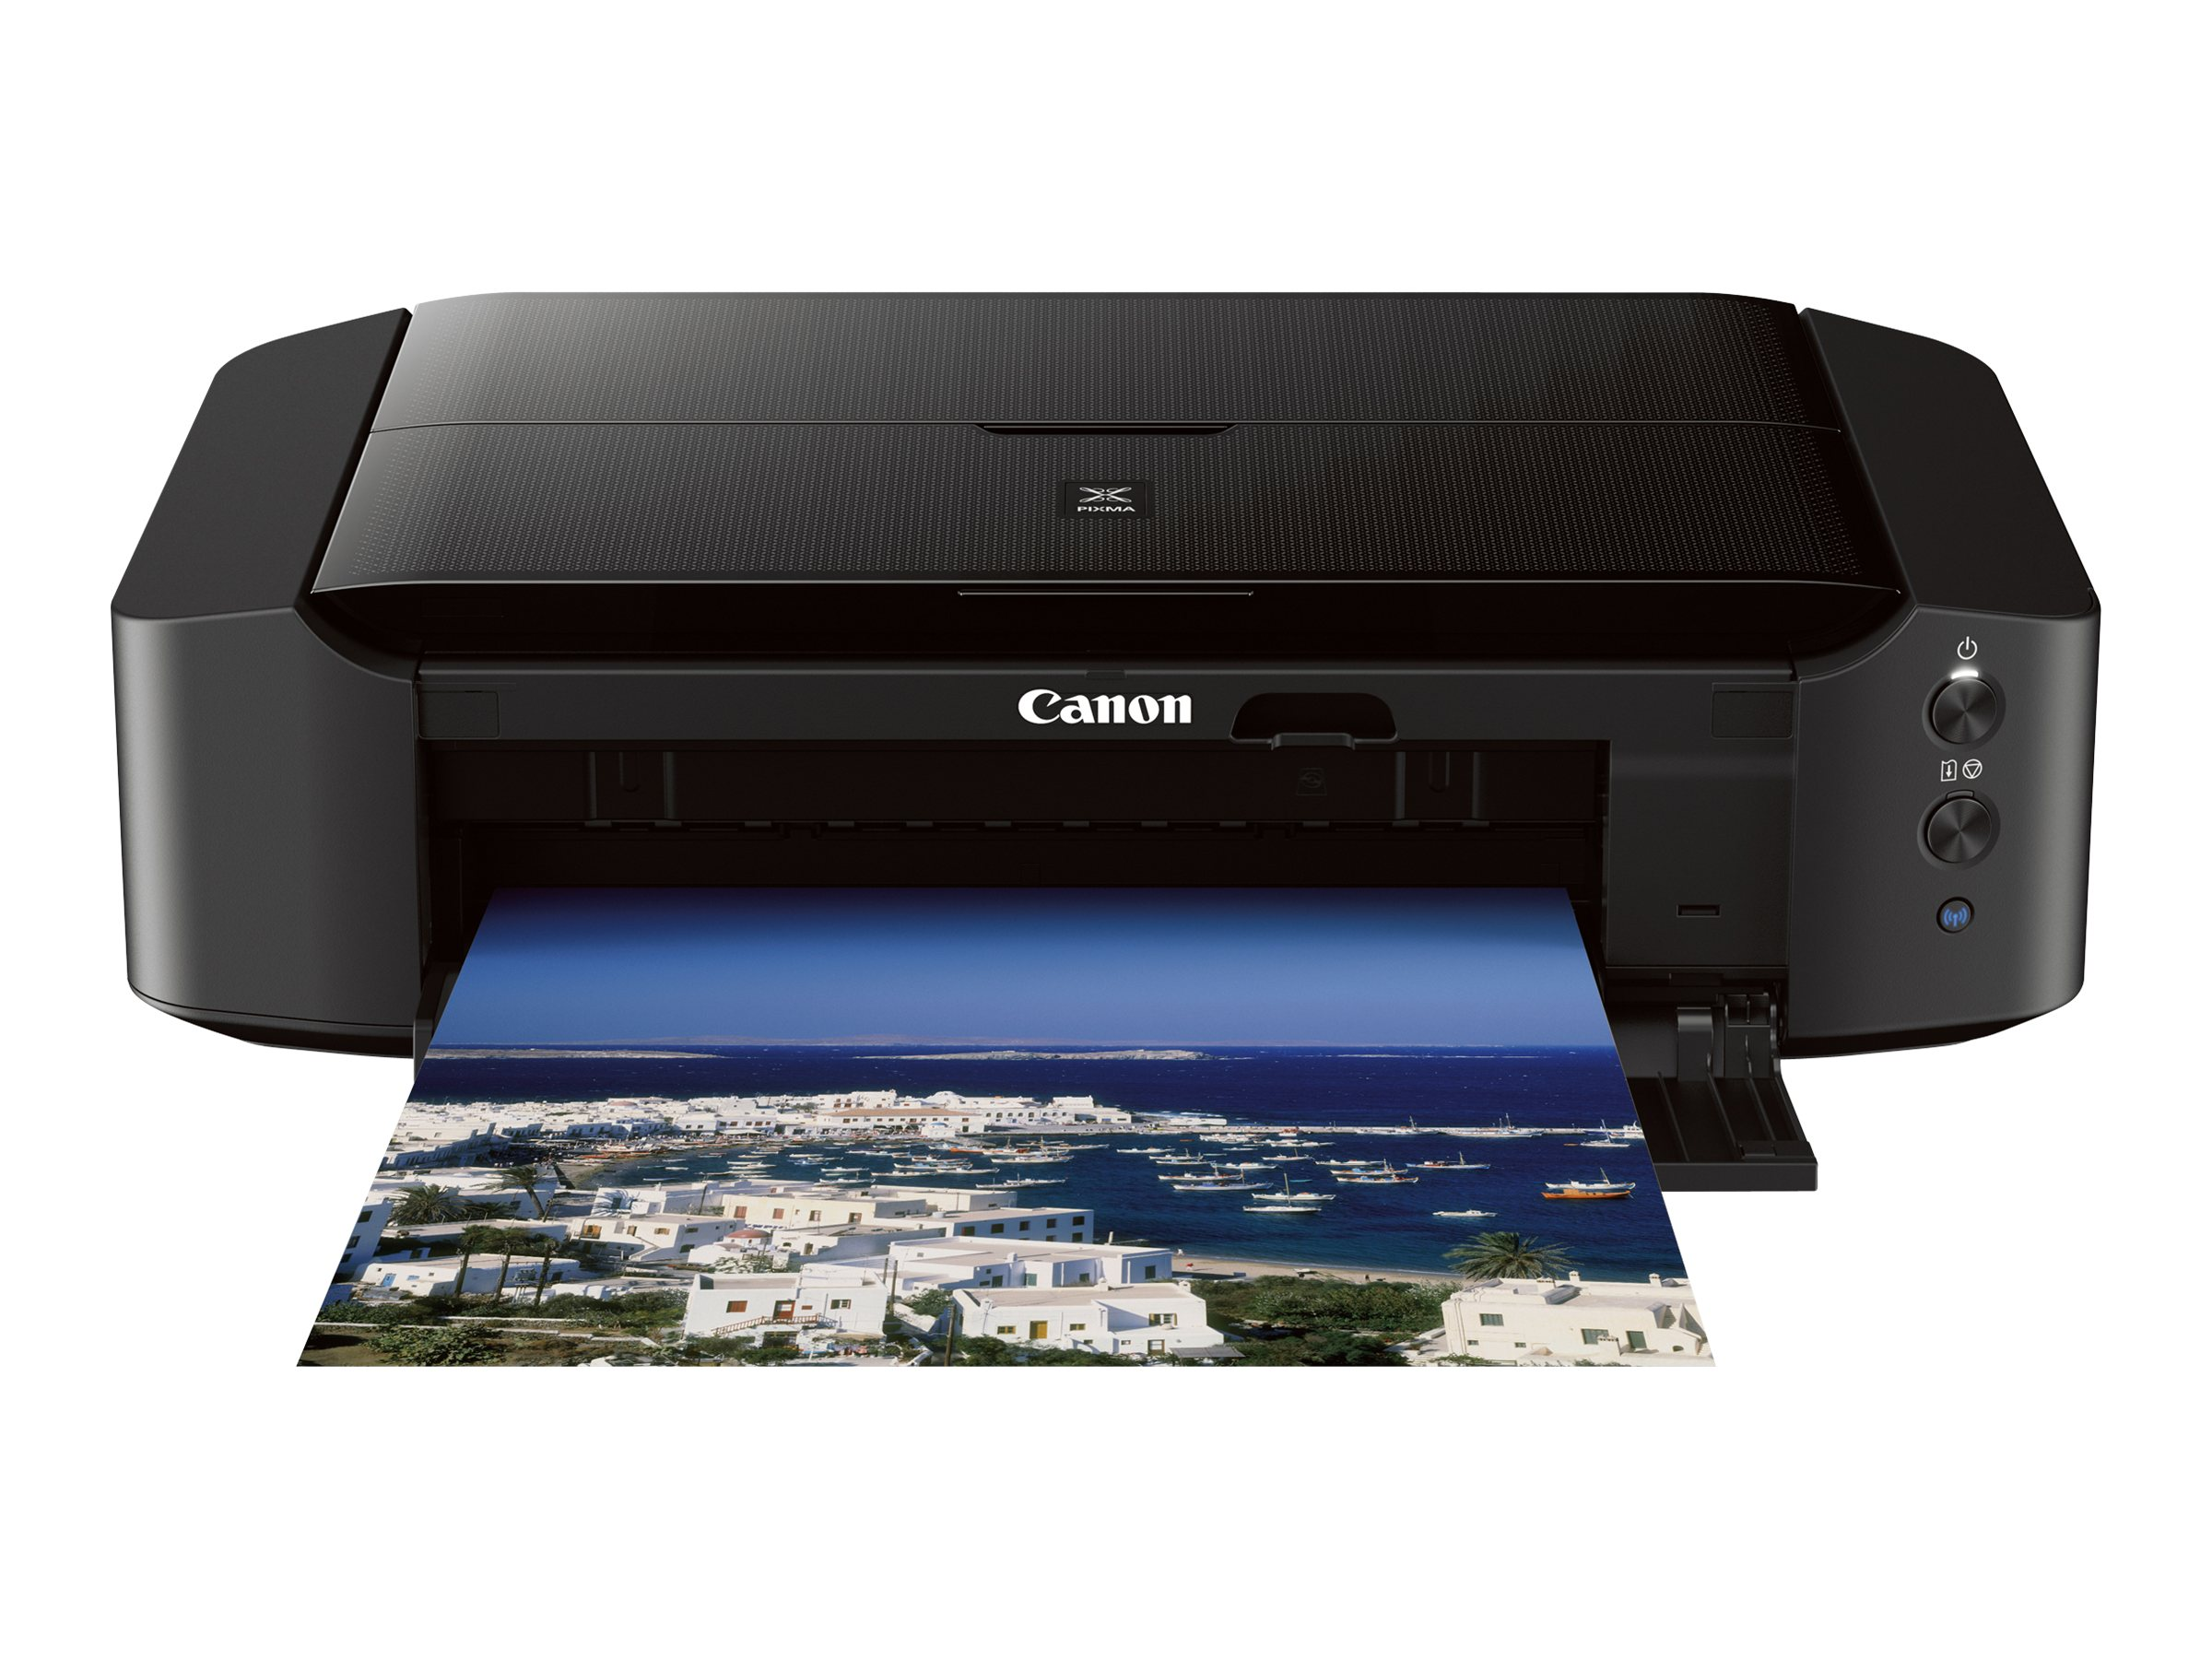 Canon PIXMA iP8720 Wireless Inkjet Photo Printer, 8746B002